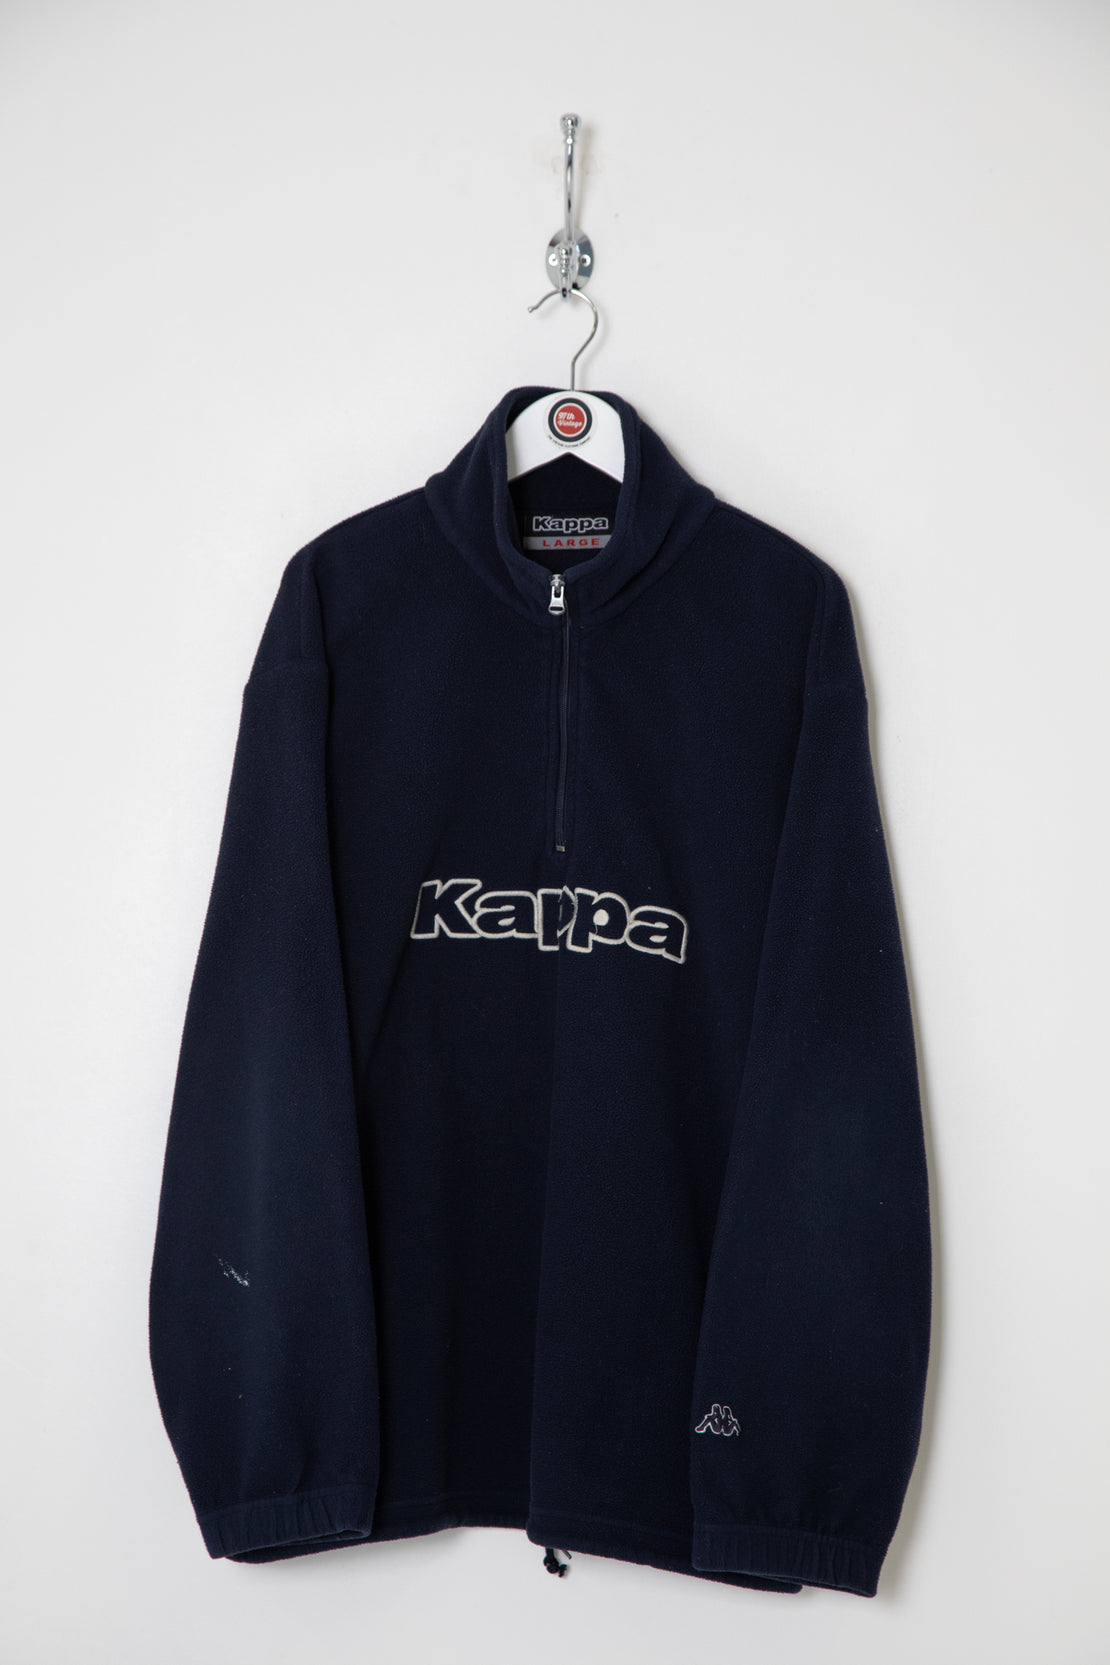 Kappa Fleece (L)